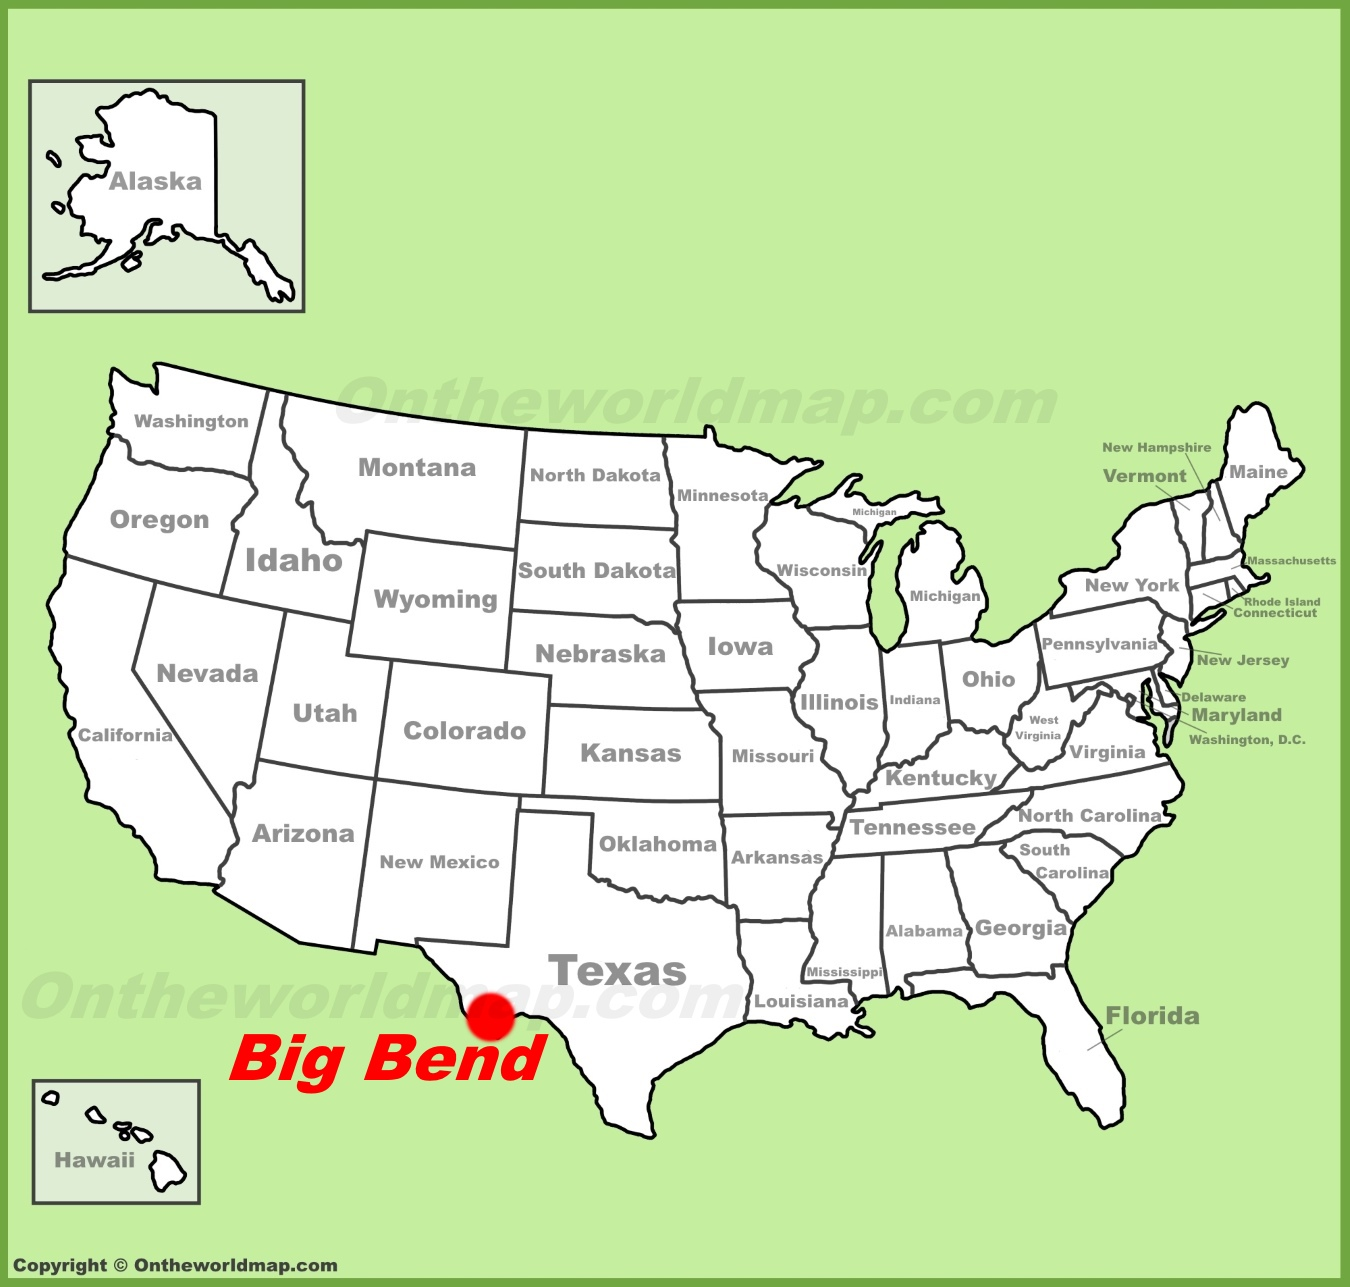 Big Bend National Park location on the US Map